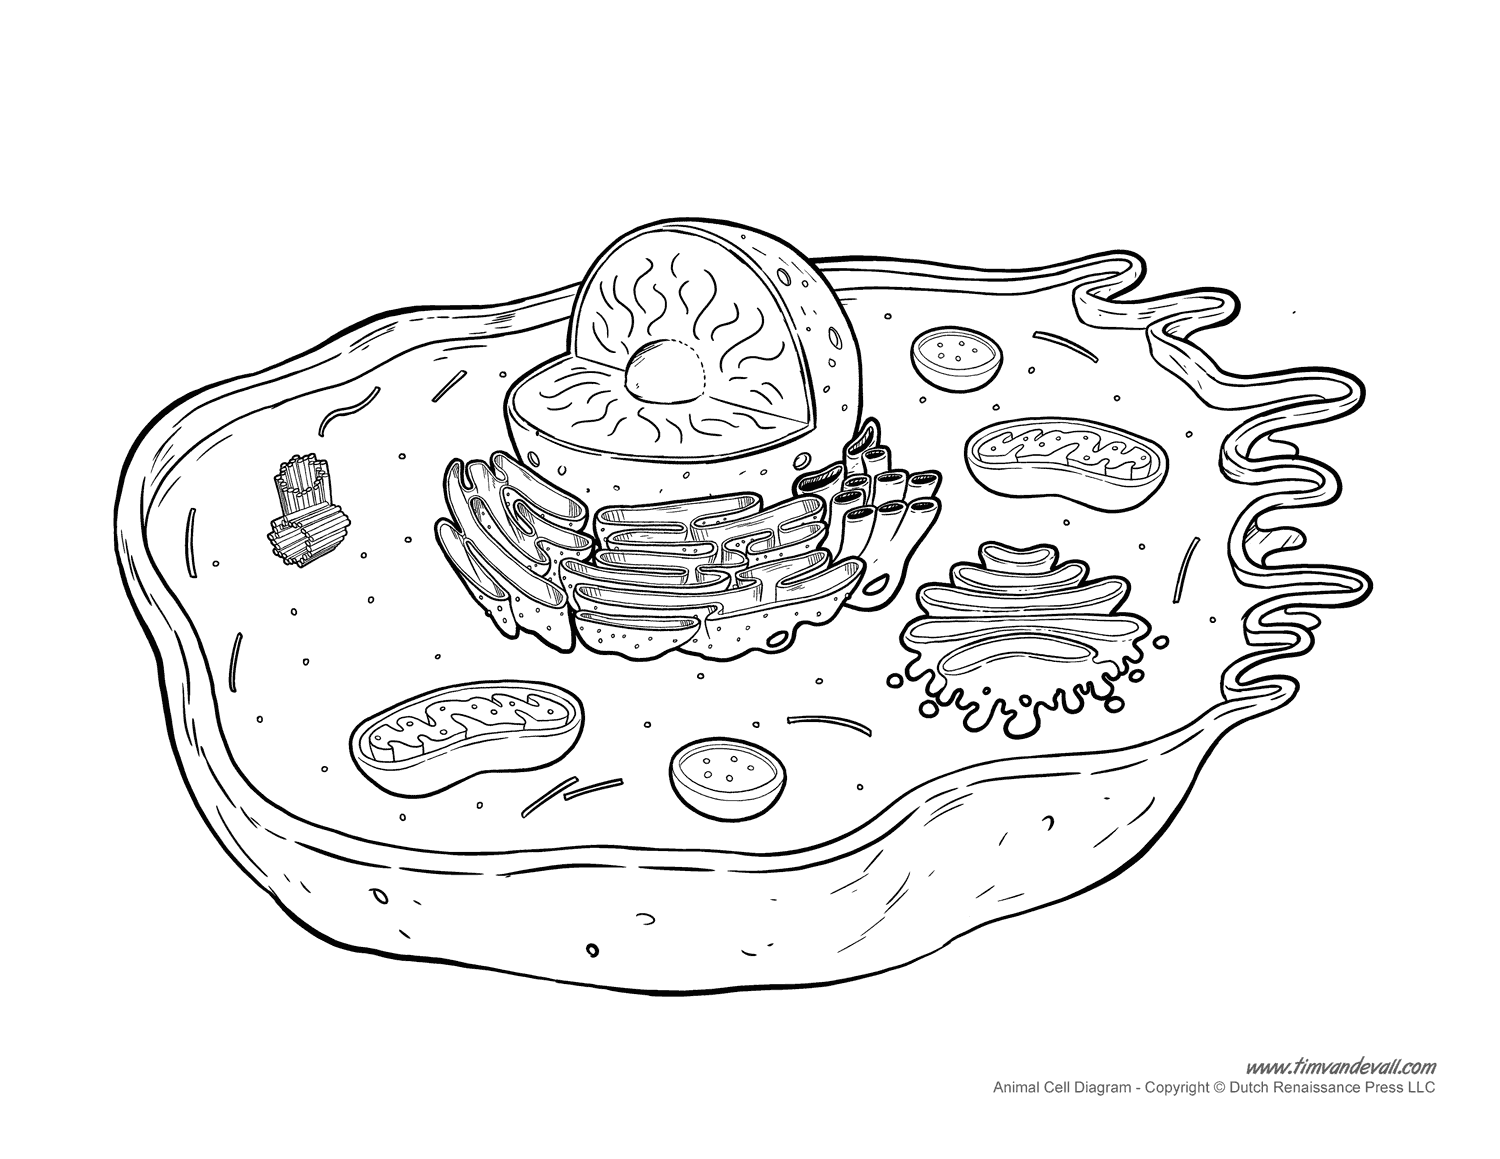 hight resolution of animal cell diagram not labeled